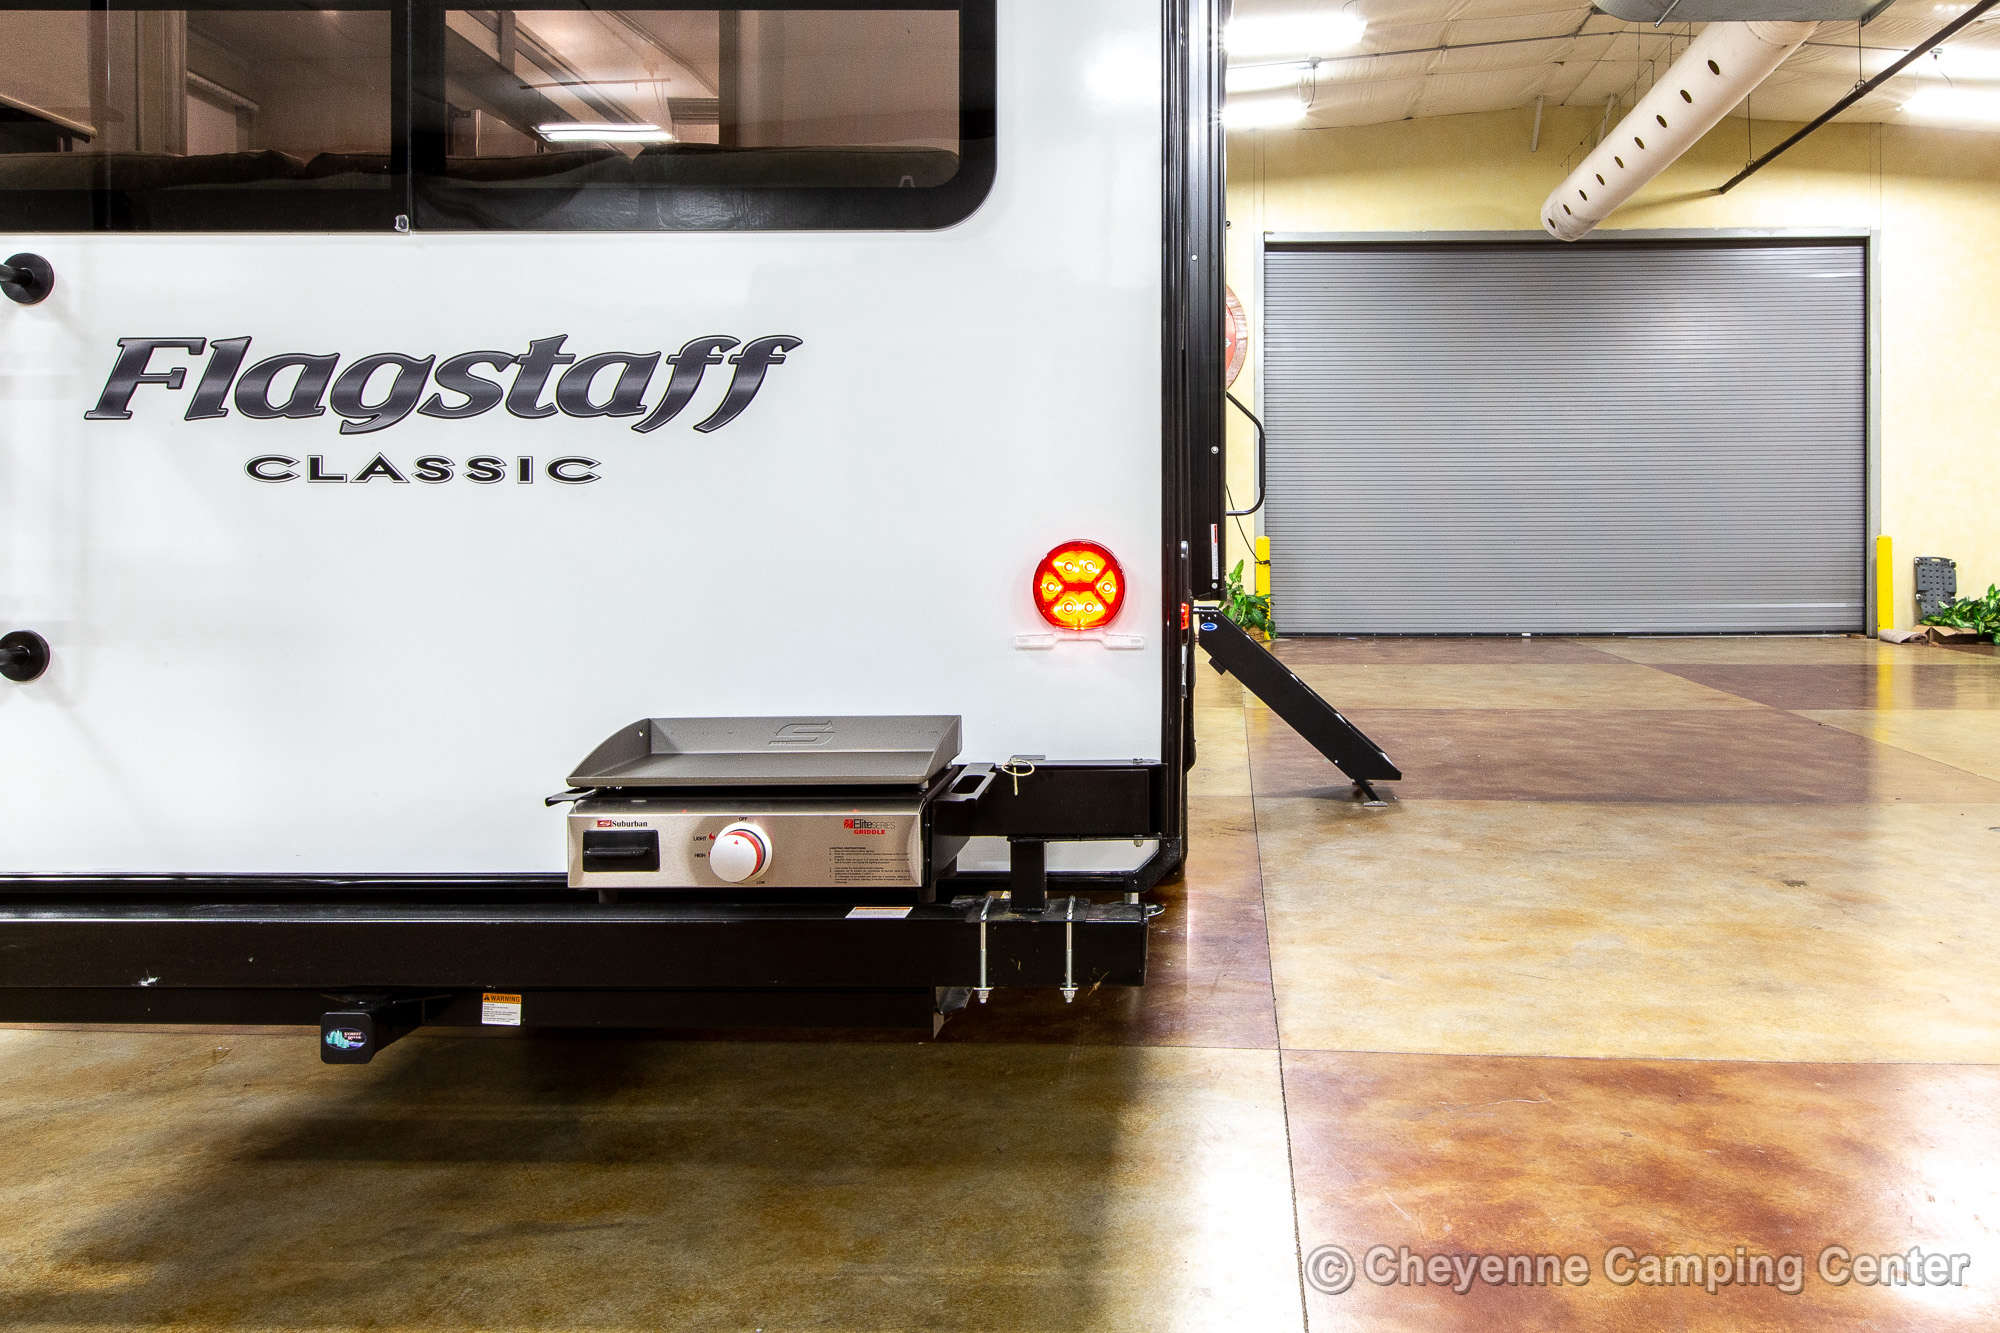 2022 Forest River Classic by Flagstaff 8529CSB Fifth Wheel Exterior Image